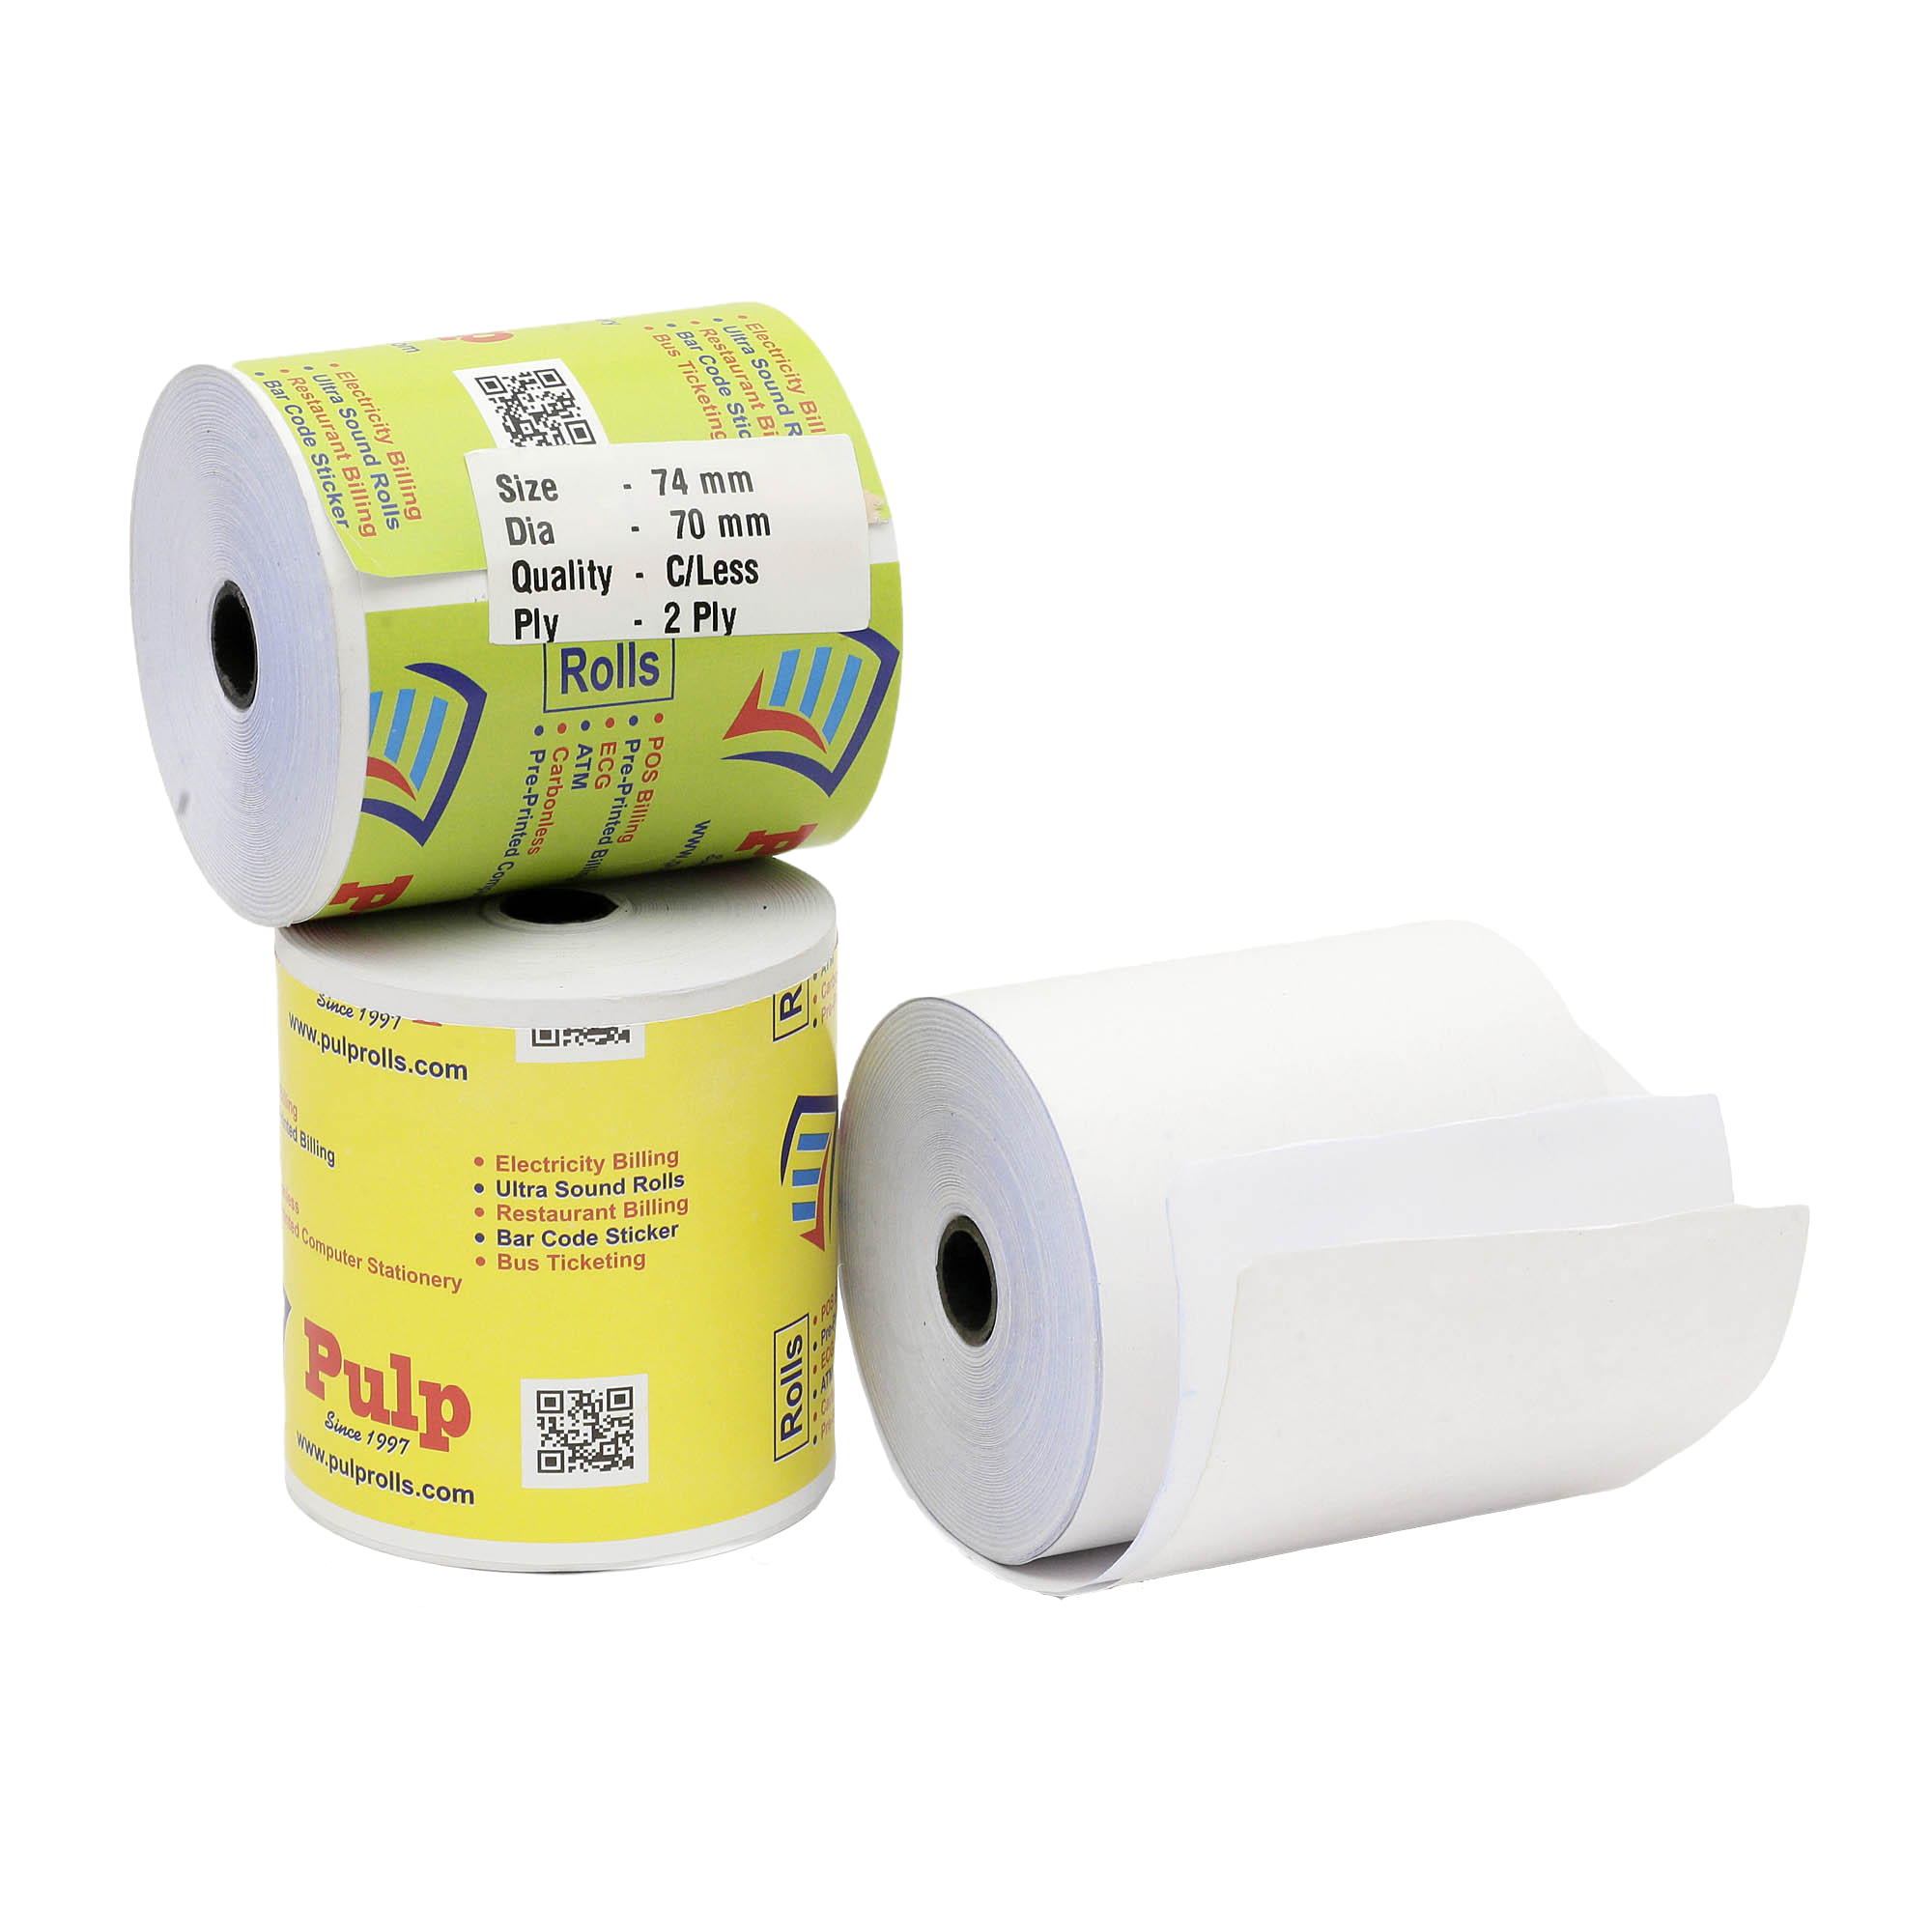 Thermal Paper Rolls Manufacturers in India | POS Printing Paper Rolls